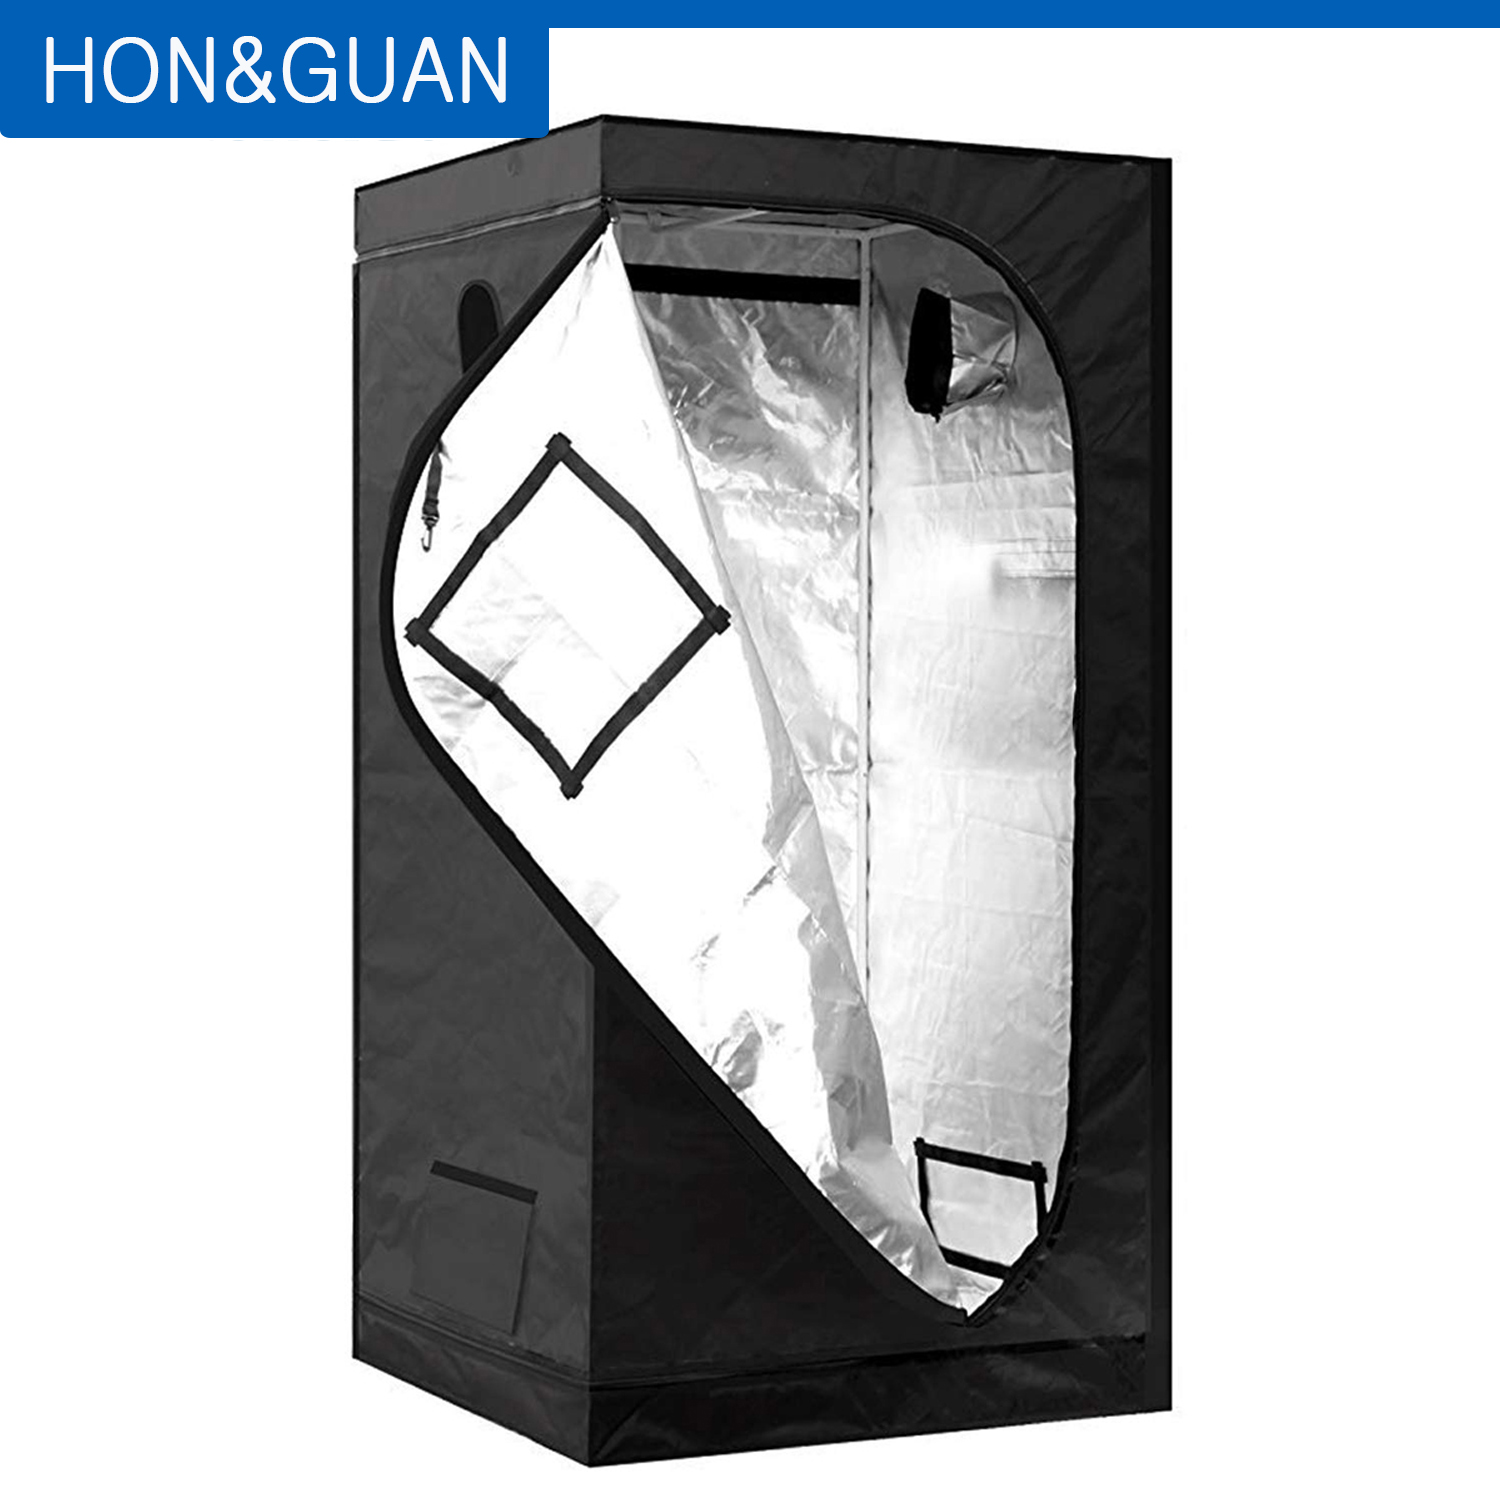 Hon&Guan 120*120*200cm Growing Tent Reflective Silver Water-Proof Mylar Hydroponic Plant Grow for Indoor Gardening